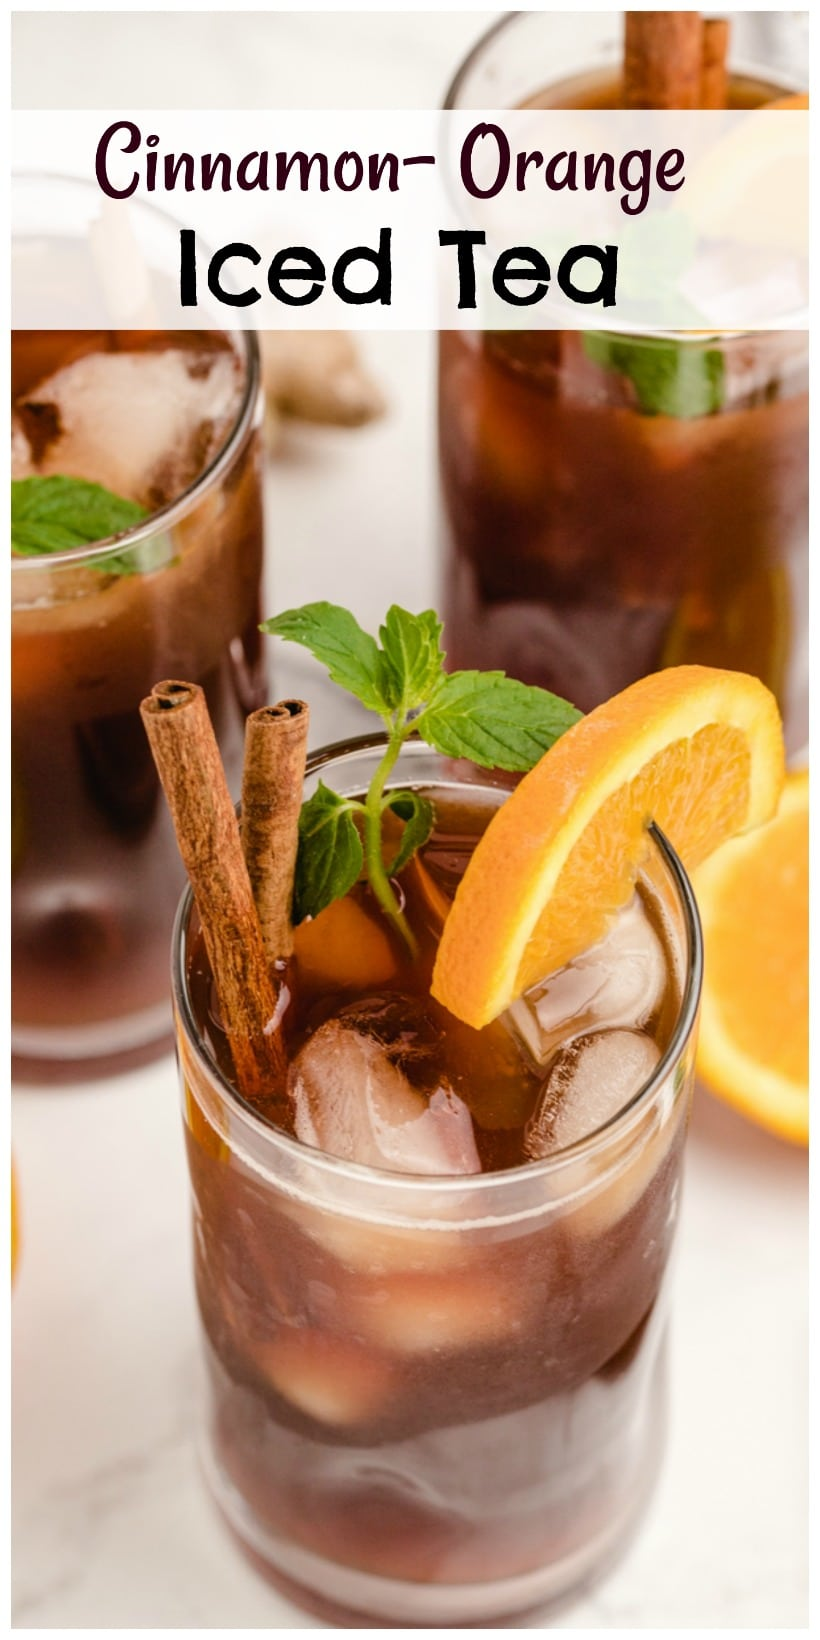 Cinnamon-Orange Iced Tea is not your typical backyard barbecue sweet tea, it's so much better! This next level iced tea uses cinnamon and ginger to highlight the sweetness of the added sugar and bring to the life the light, citrus undertones. via @cmpollak1